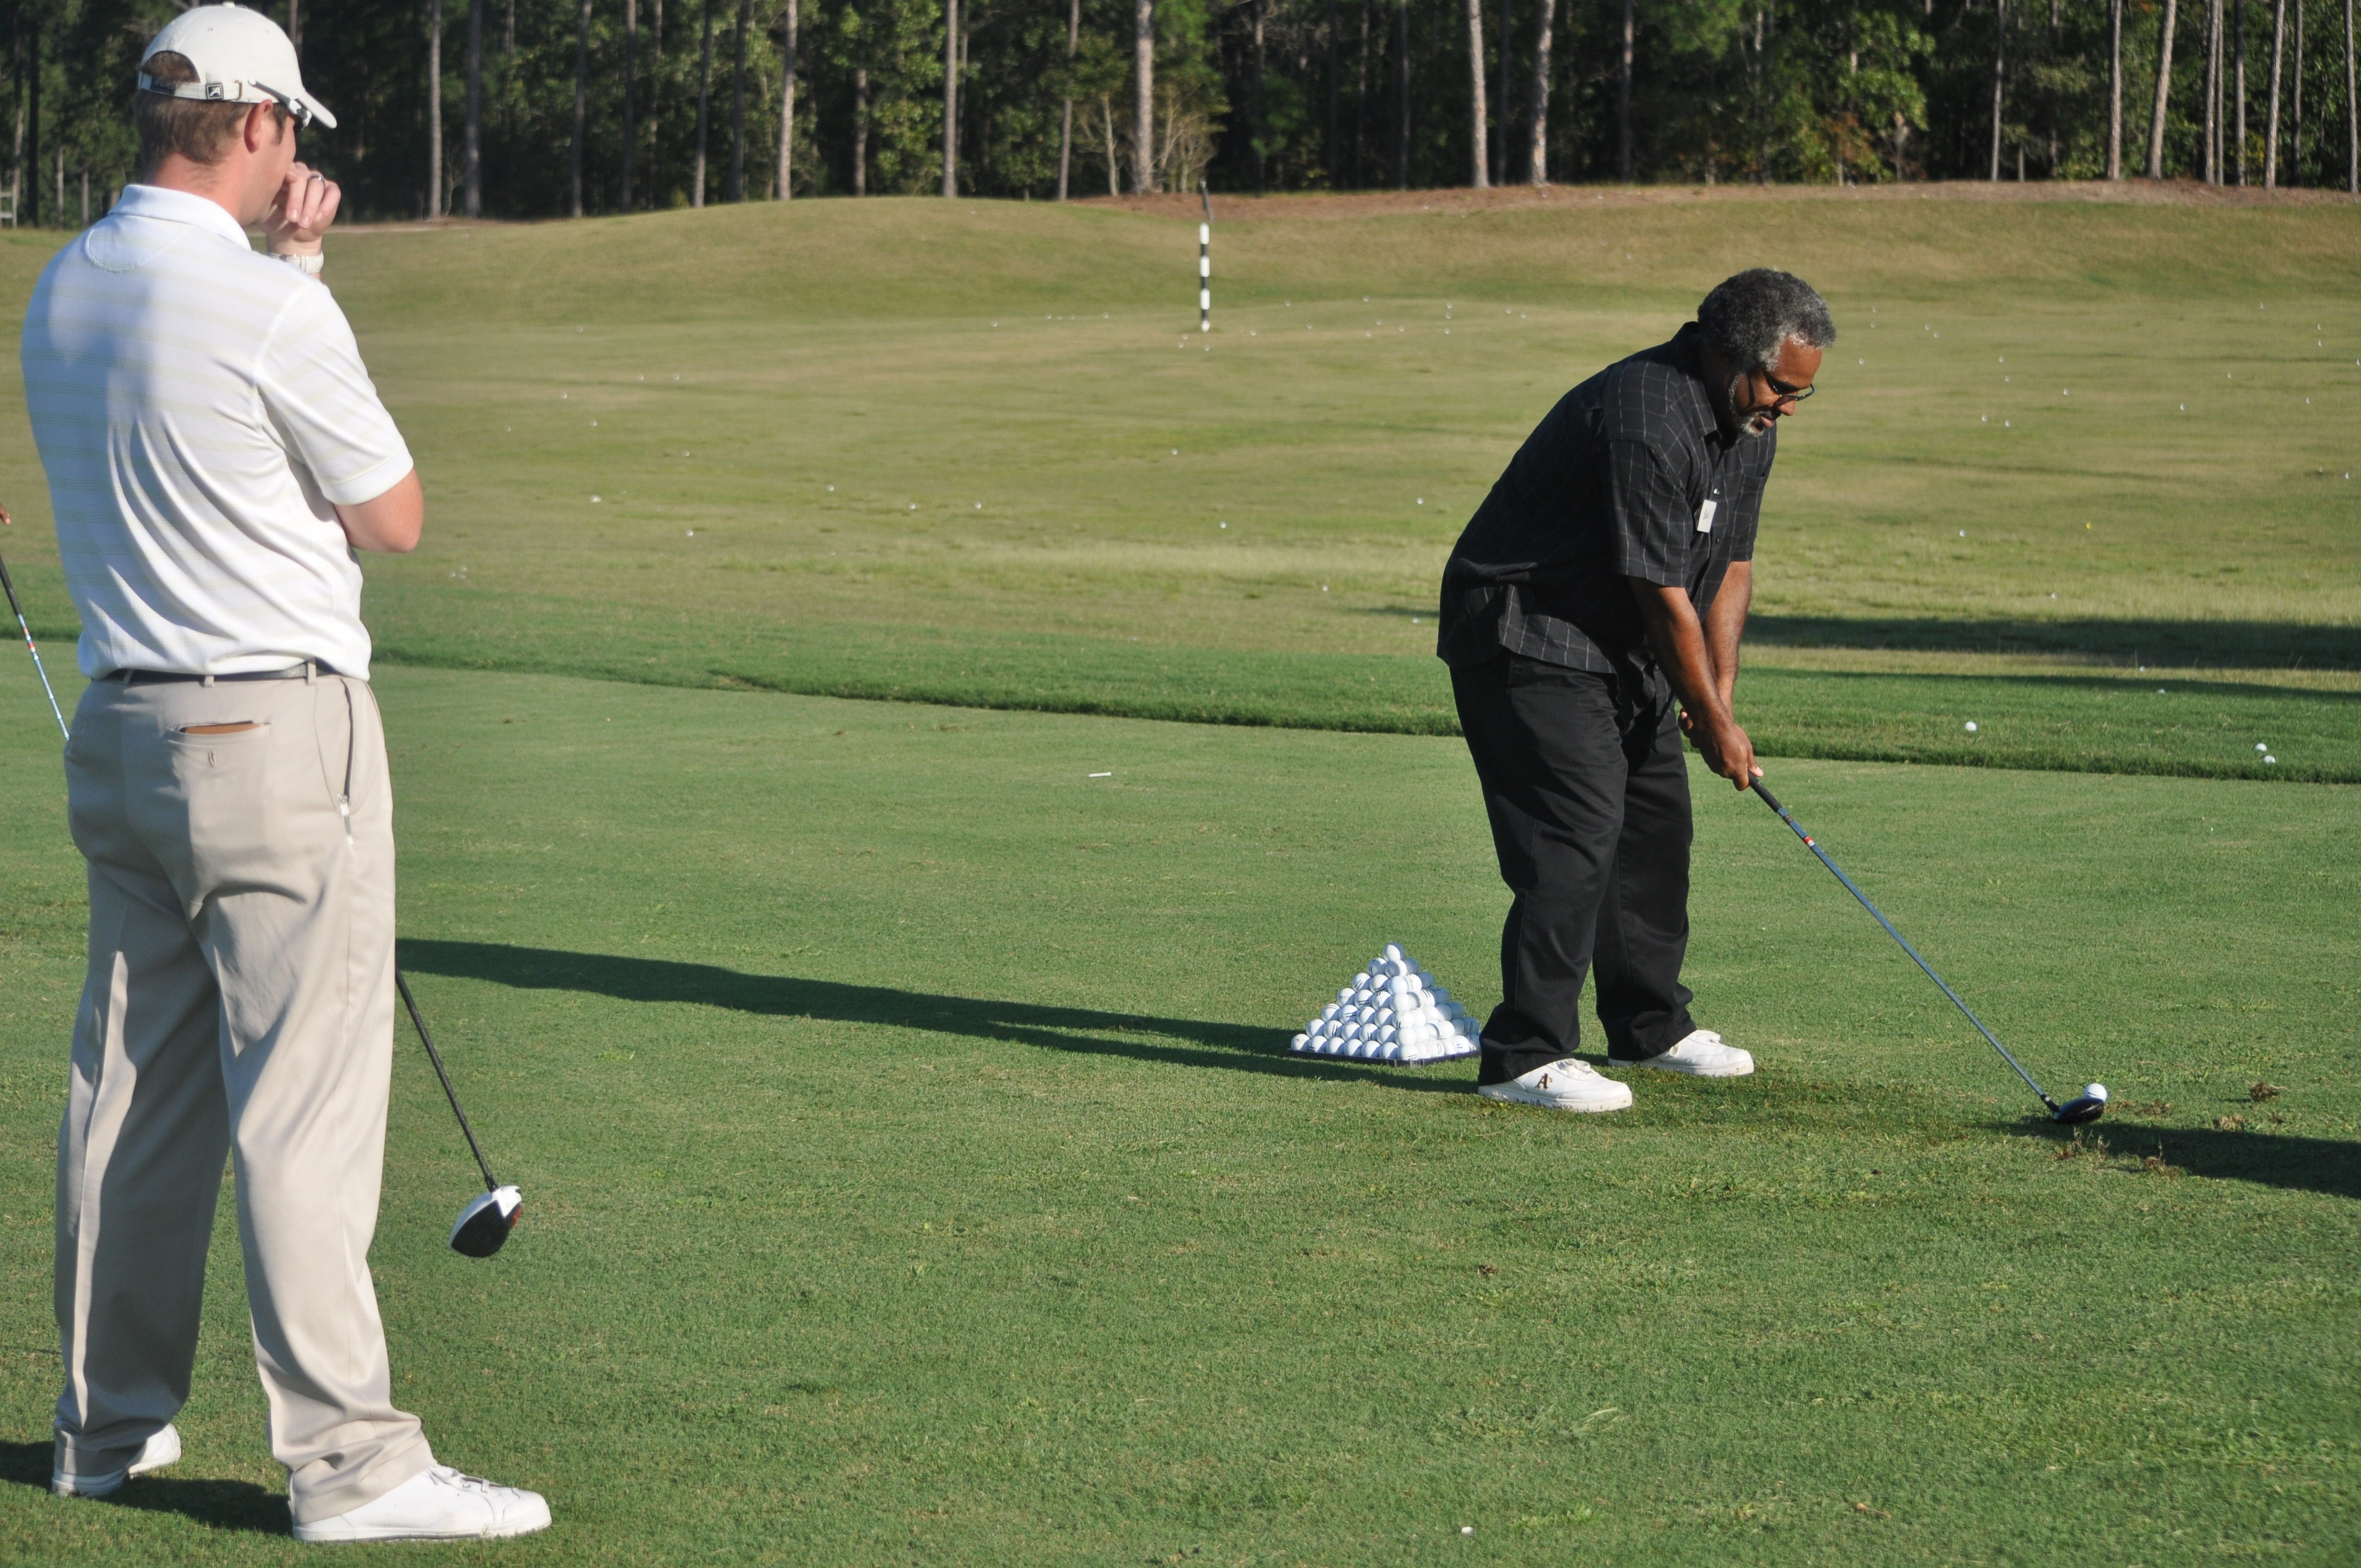 fort jackson golf course Get Golf Ready at Fort Jackson Golf Club | Article | The United ...